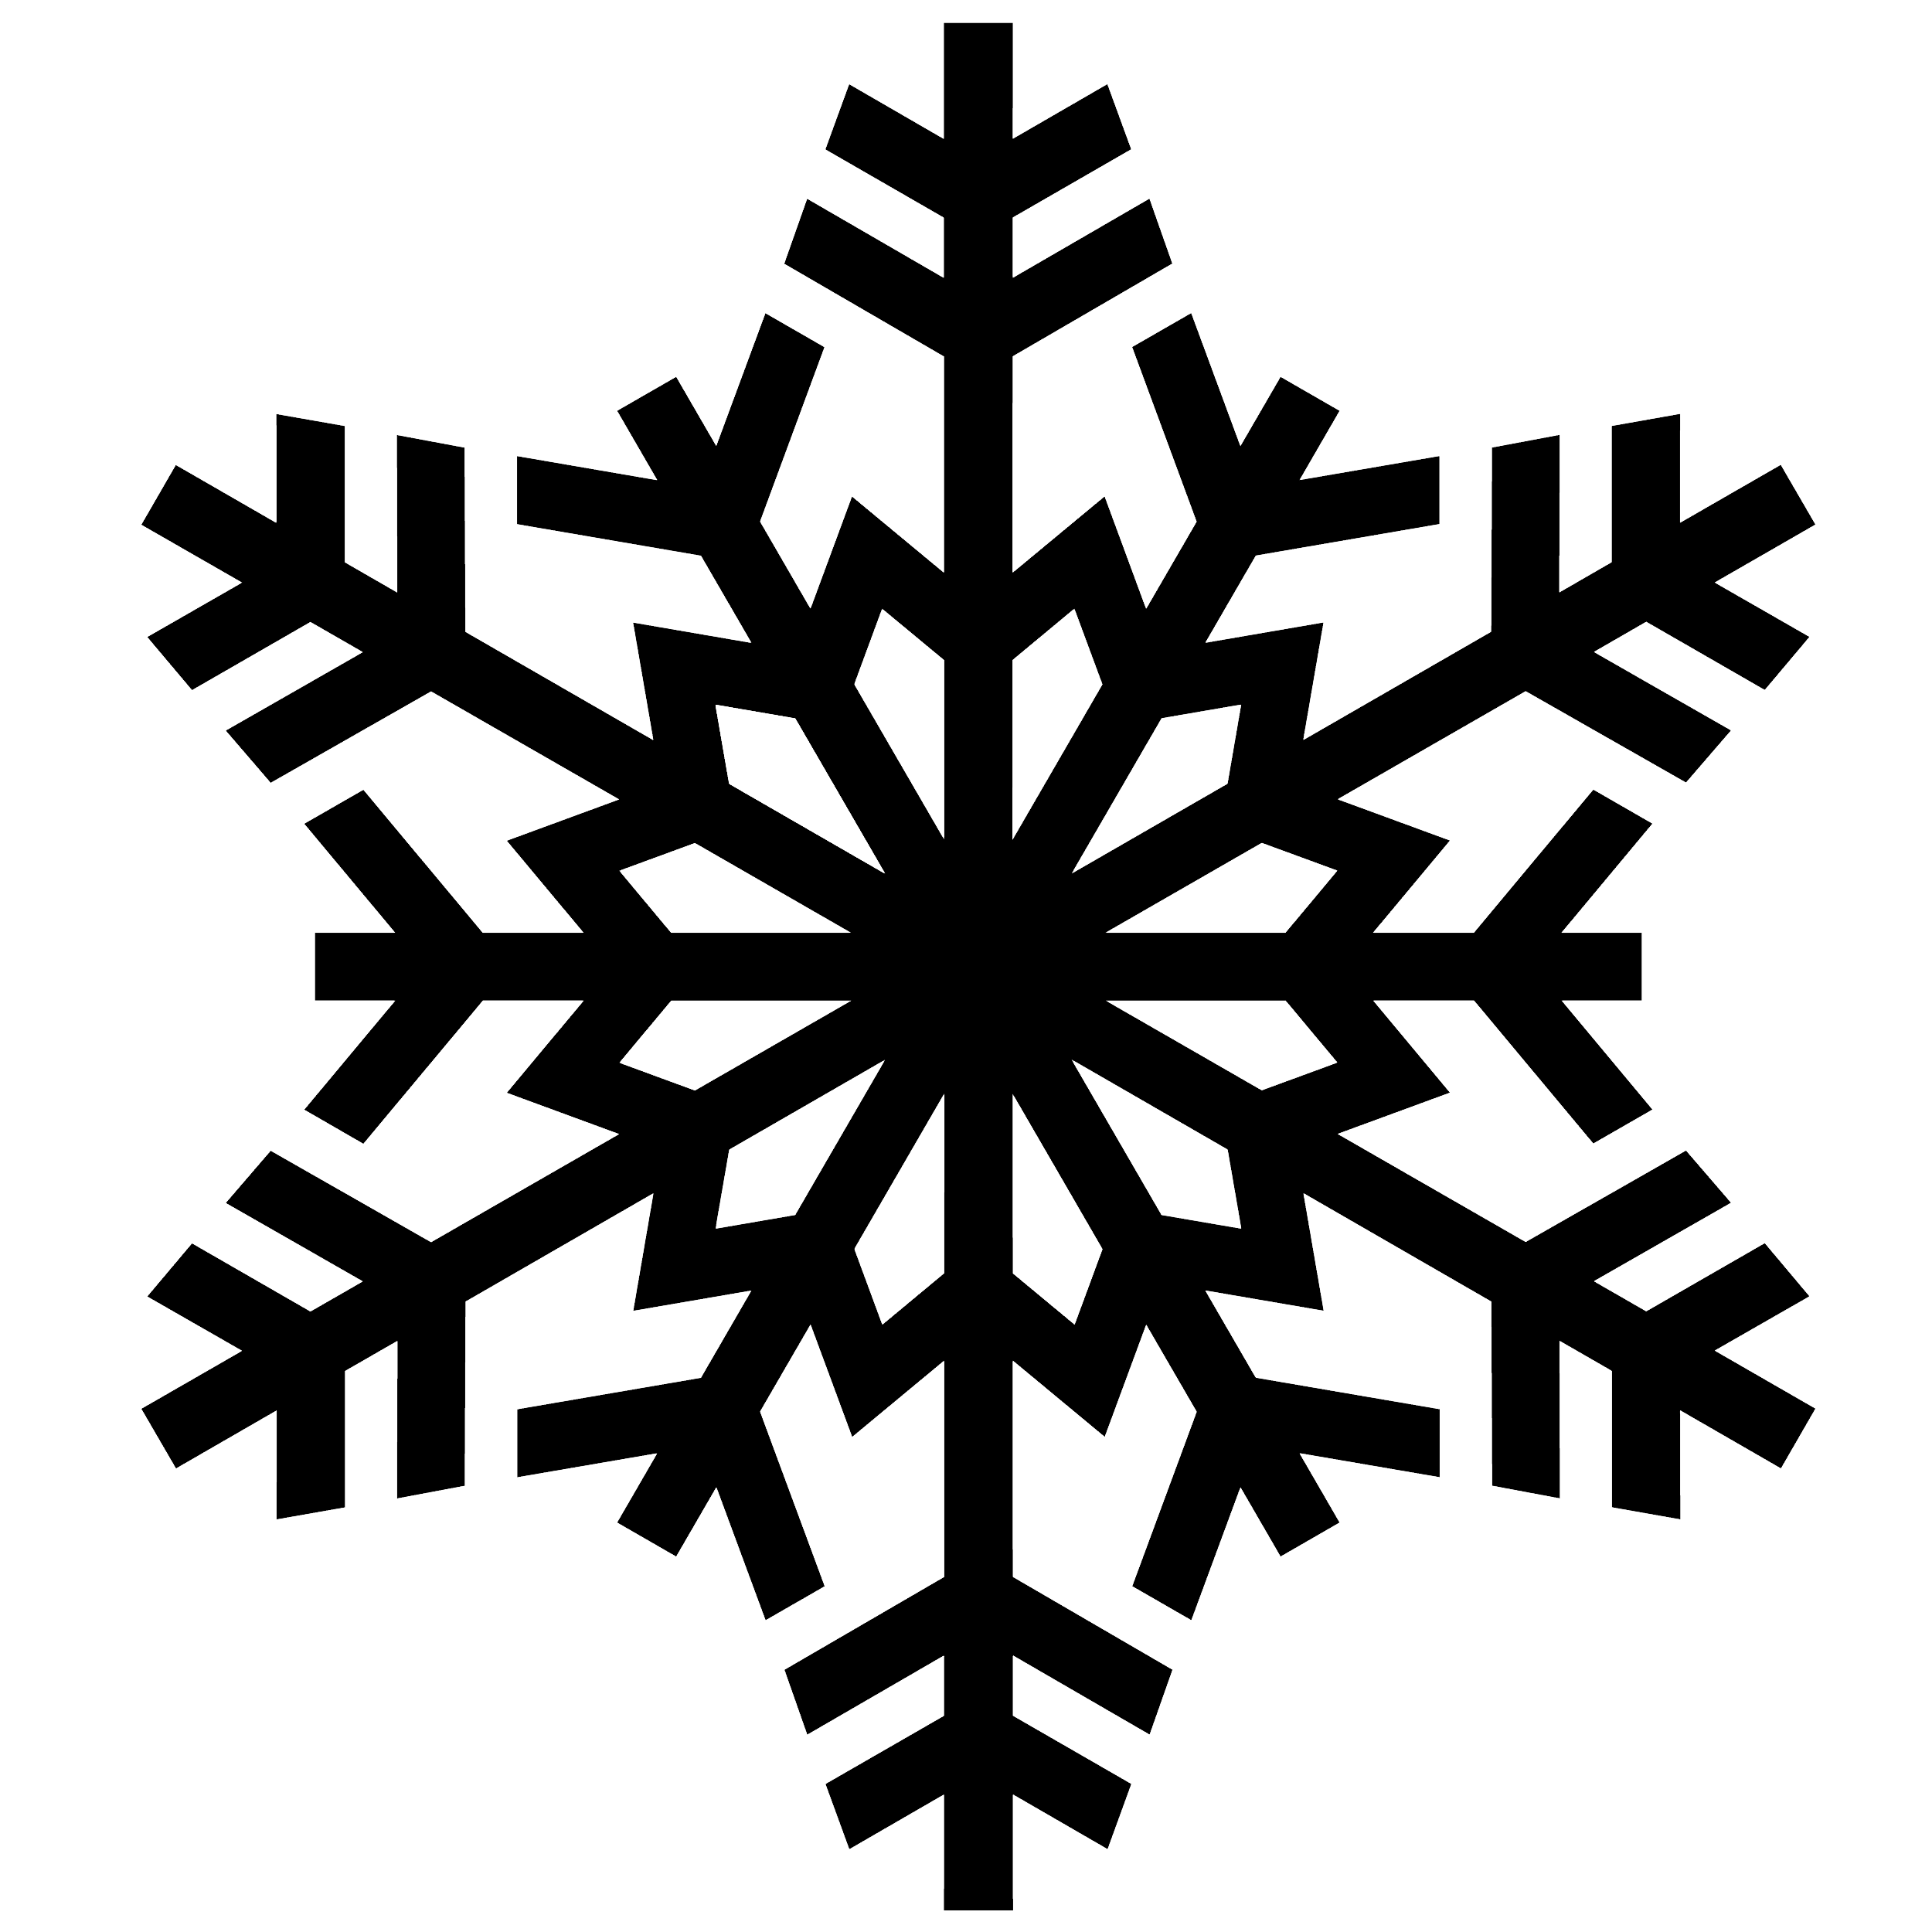 Tiny Snowy Snowflake PNG Image